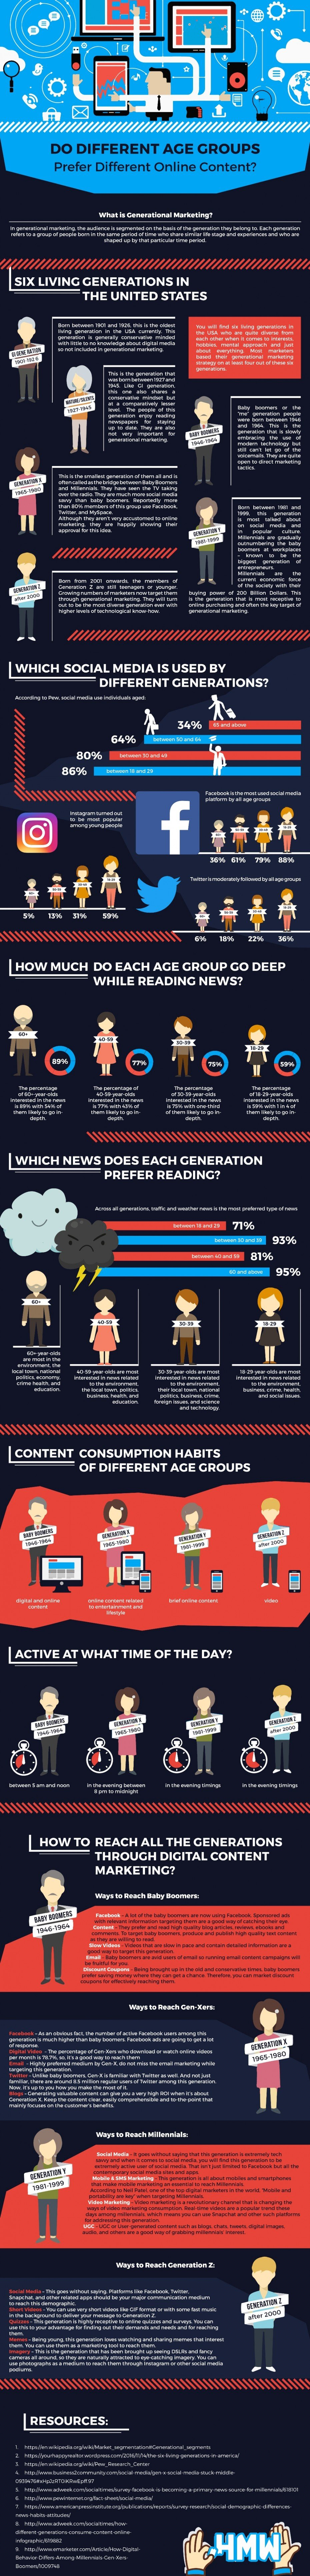 Do Different Age Groups Prefer Different Online Content infographic